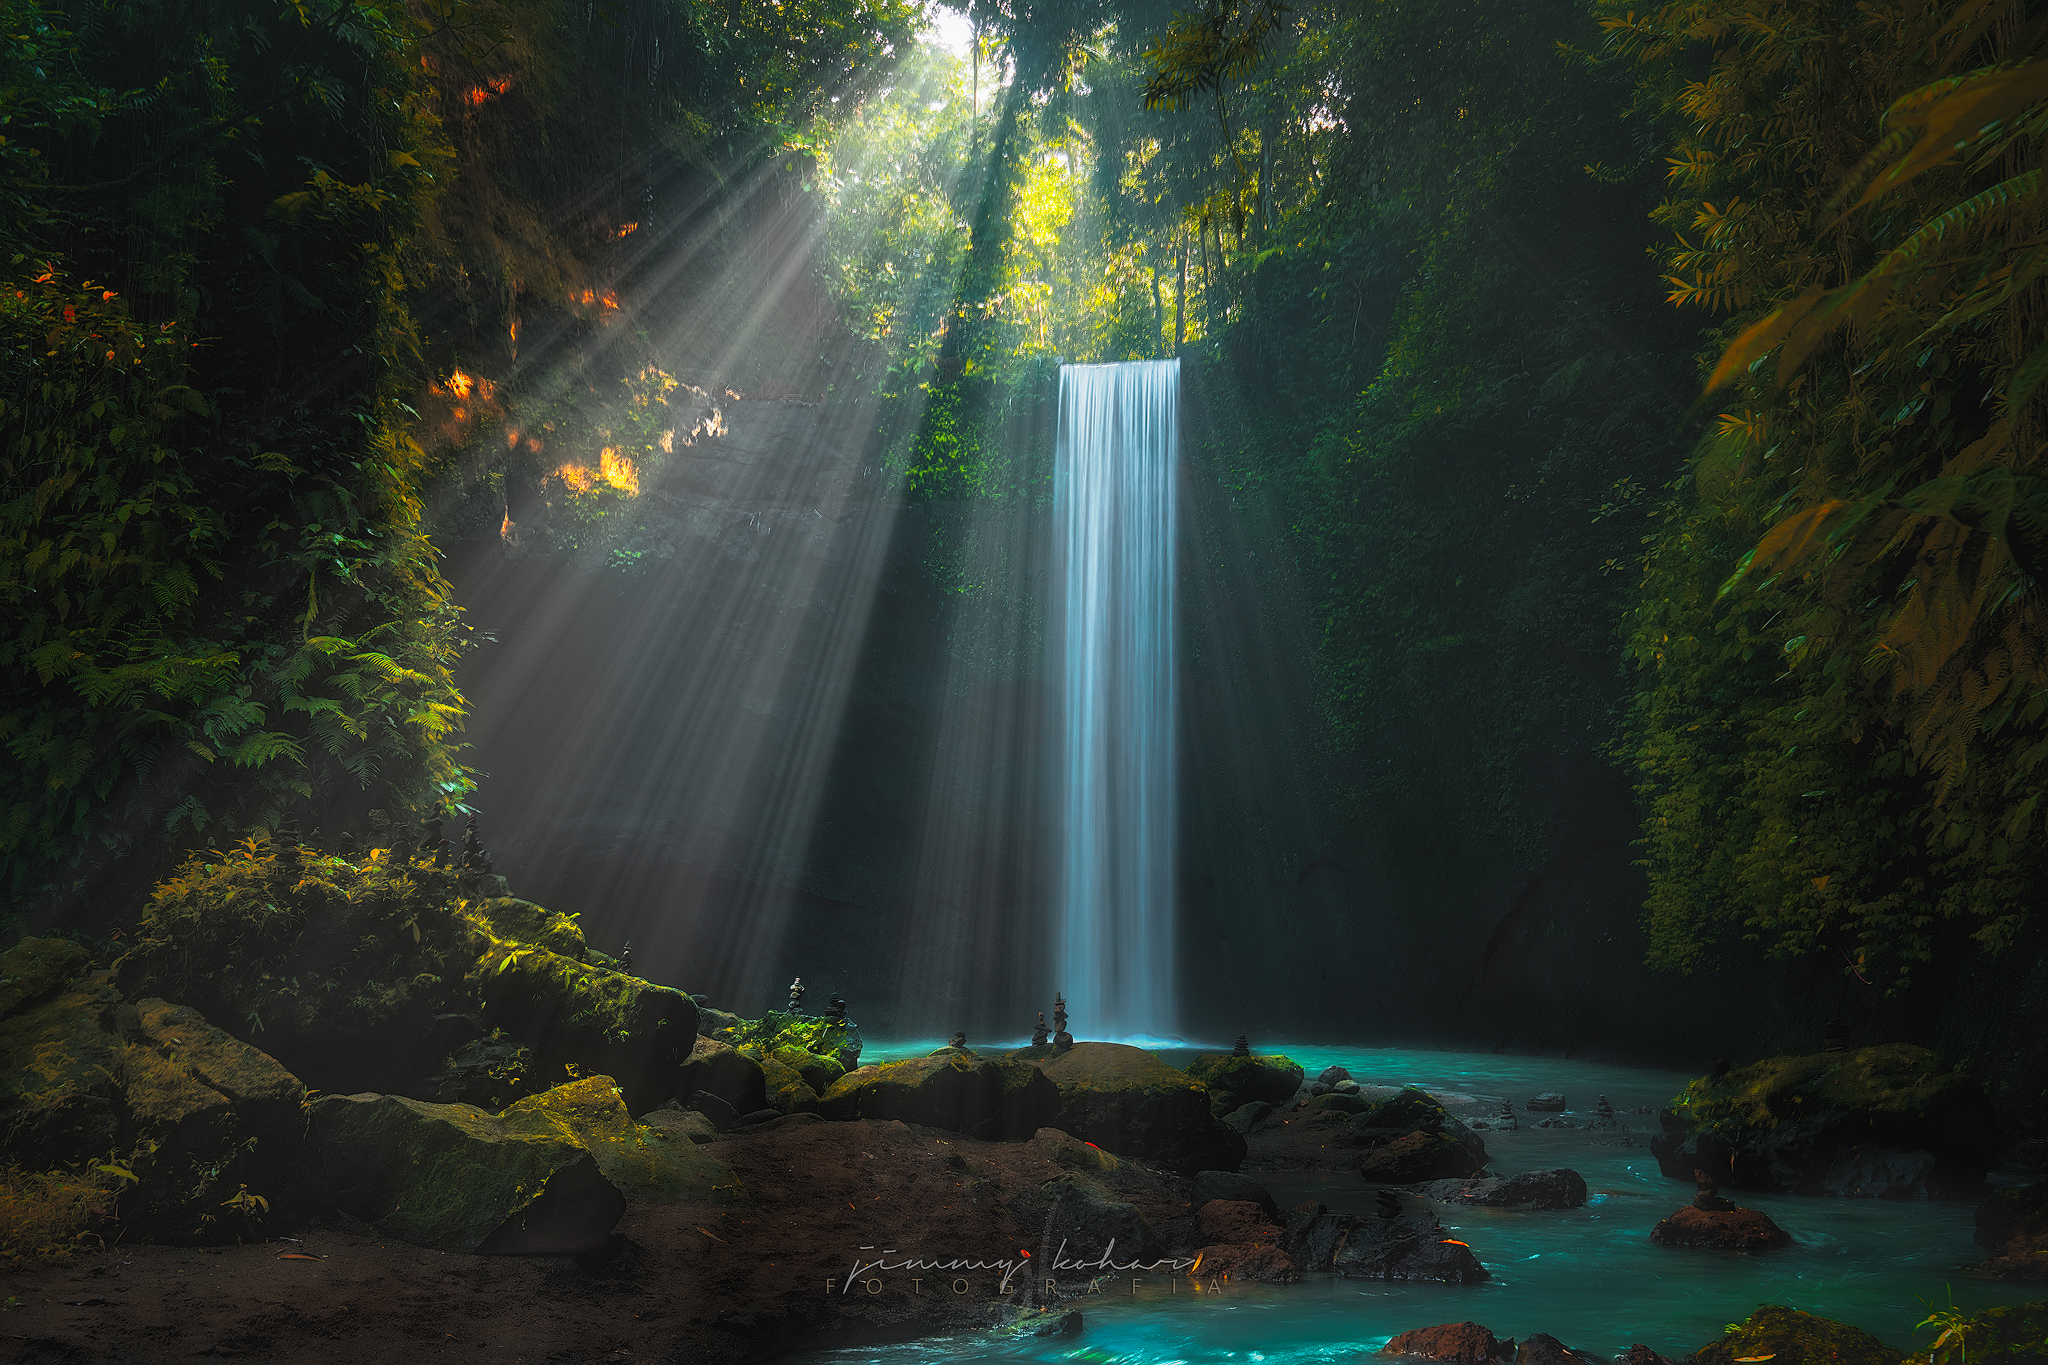 Tibumana Waterfall, Indonesia